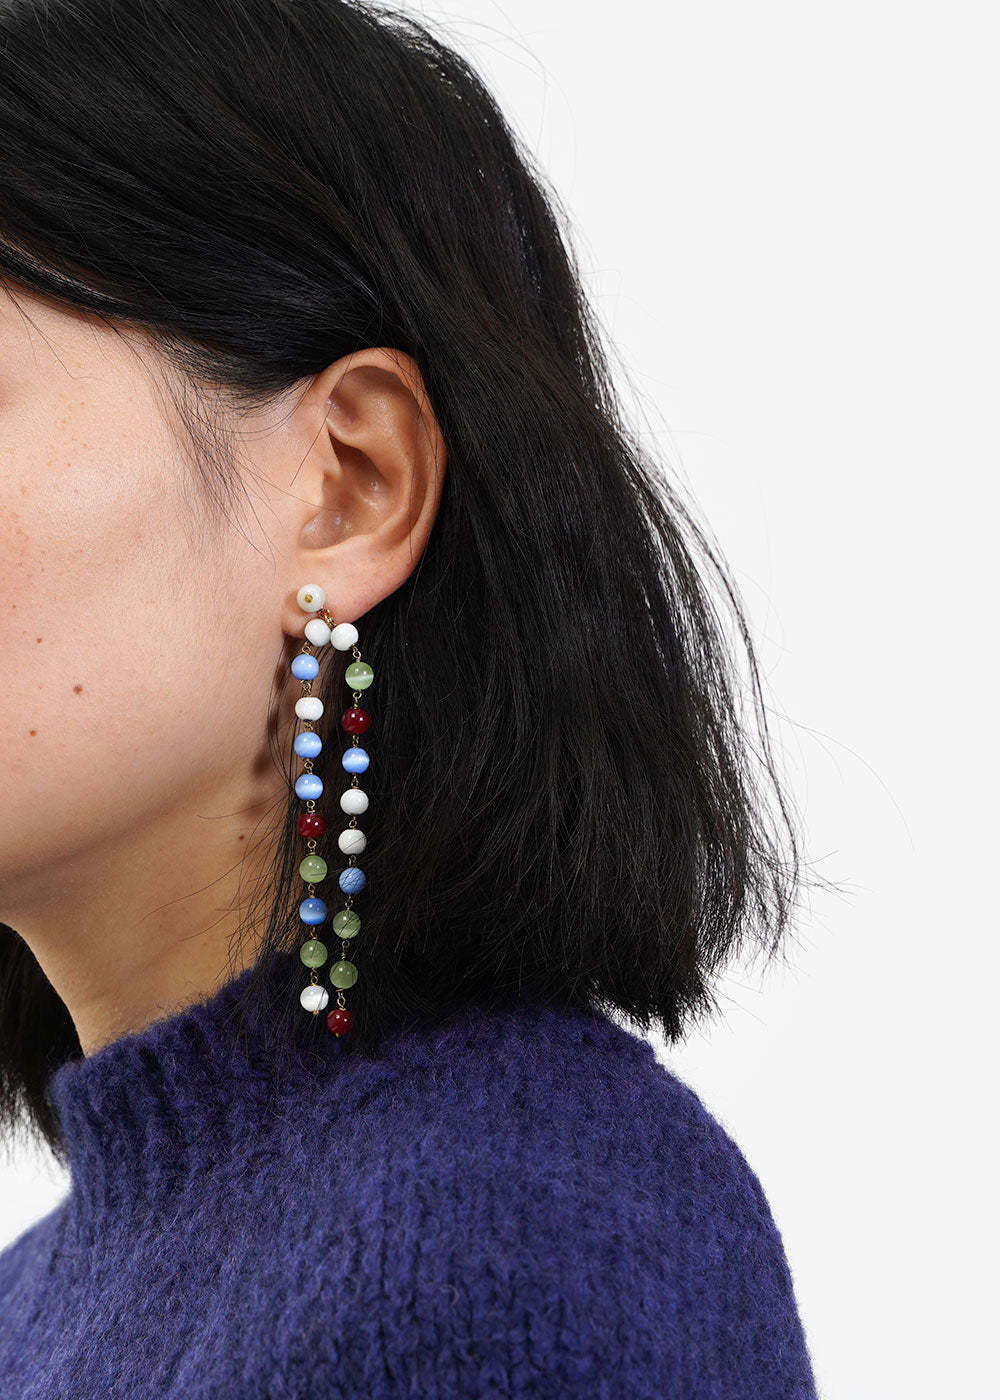 Paloma Wool Veleta Earrings — Shop sustainable fashion and slow fashion at New Classics Studios